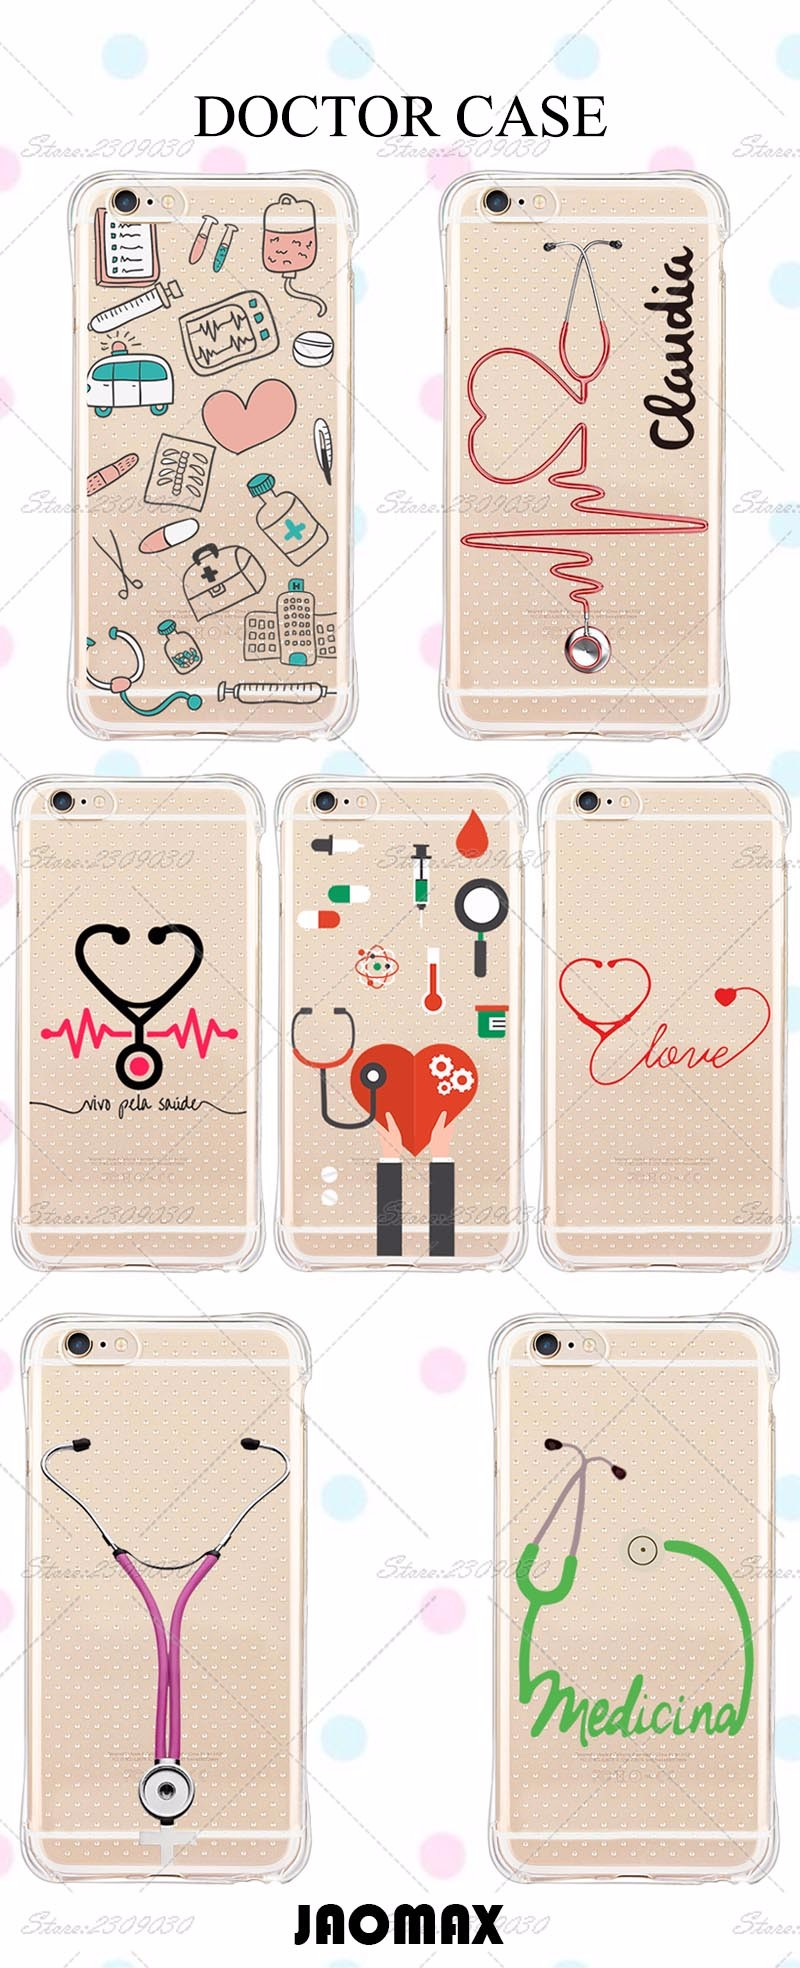 Knock Knock Salle De Bain ~  pink cute medical doctor anti knock phone case for iphone 6 plus